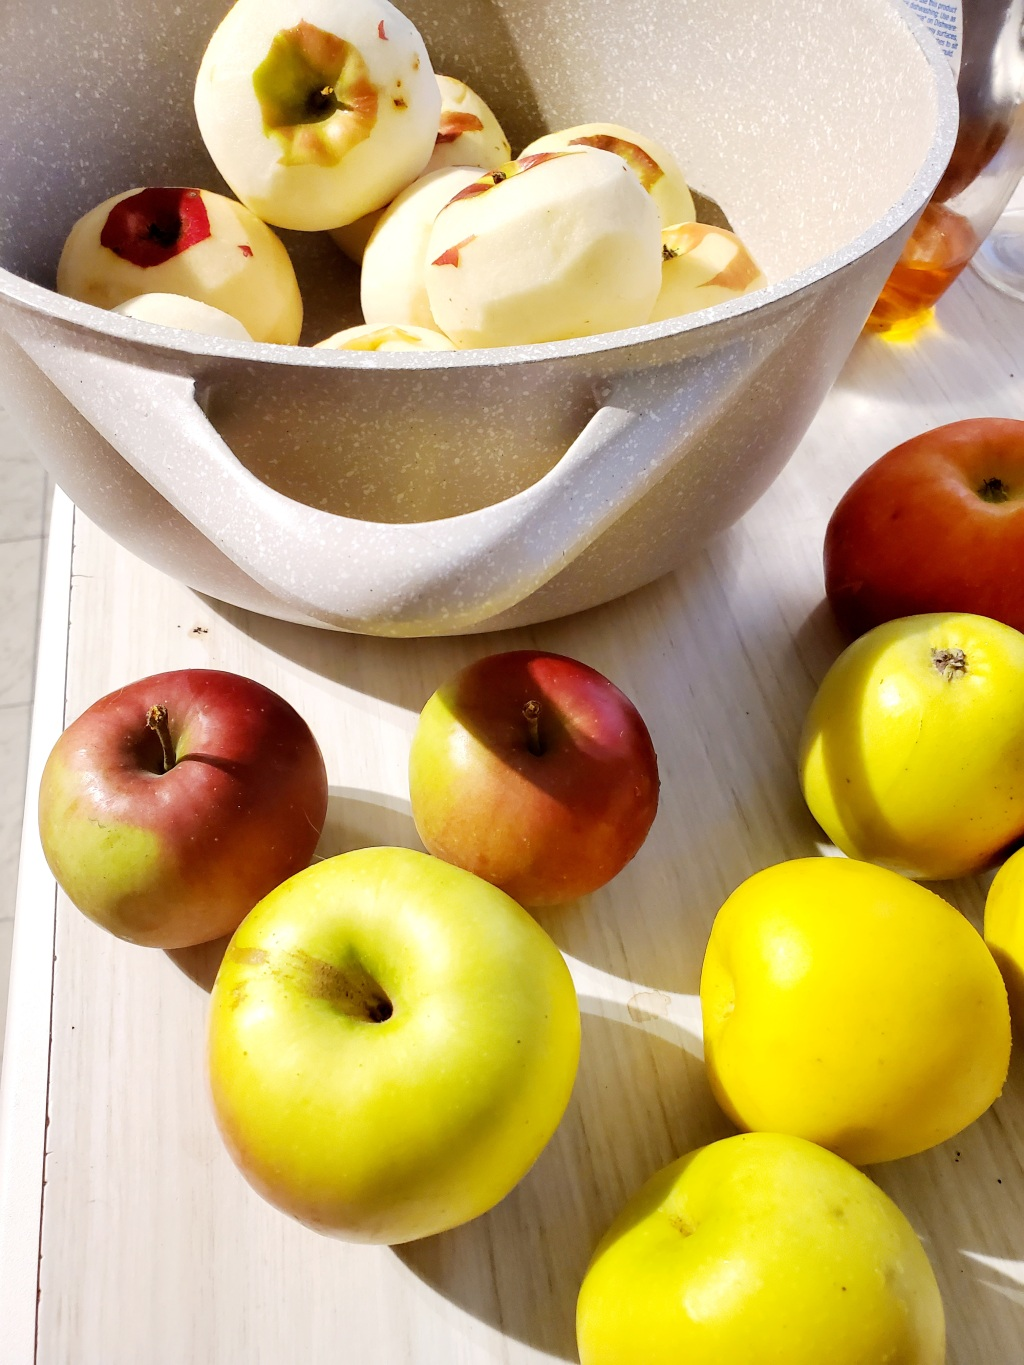 yellow and red apples and a pan filled with peeled apples